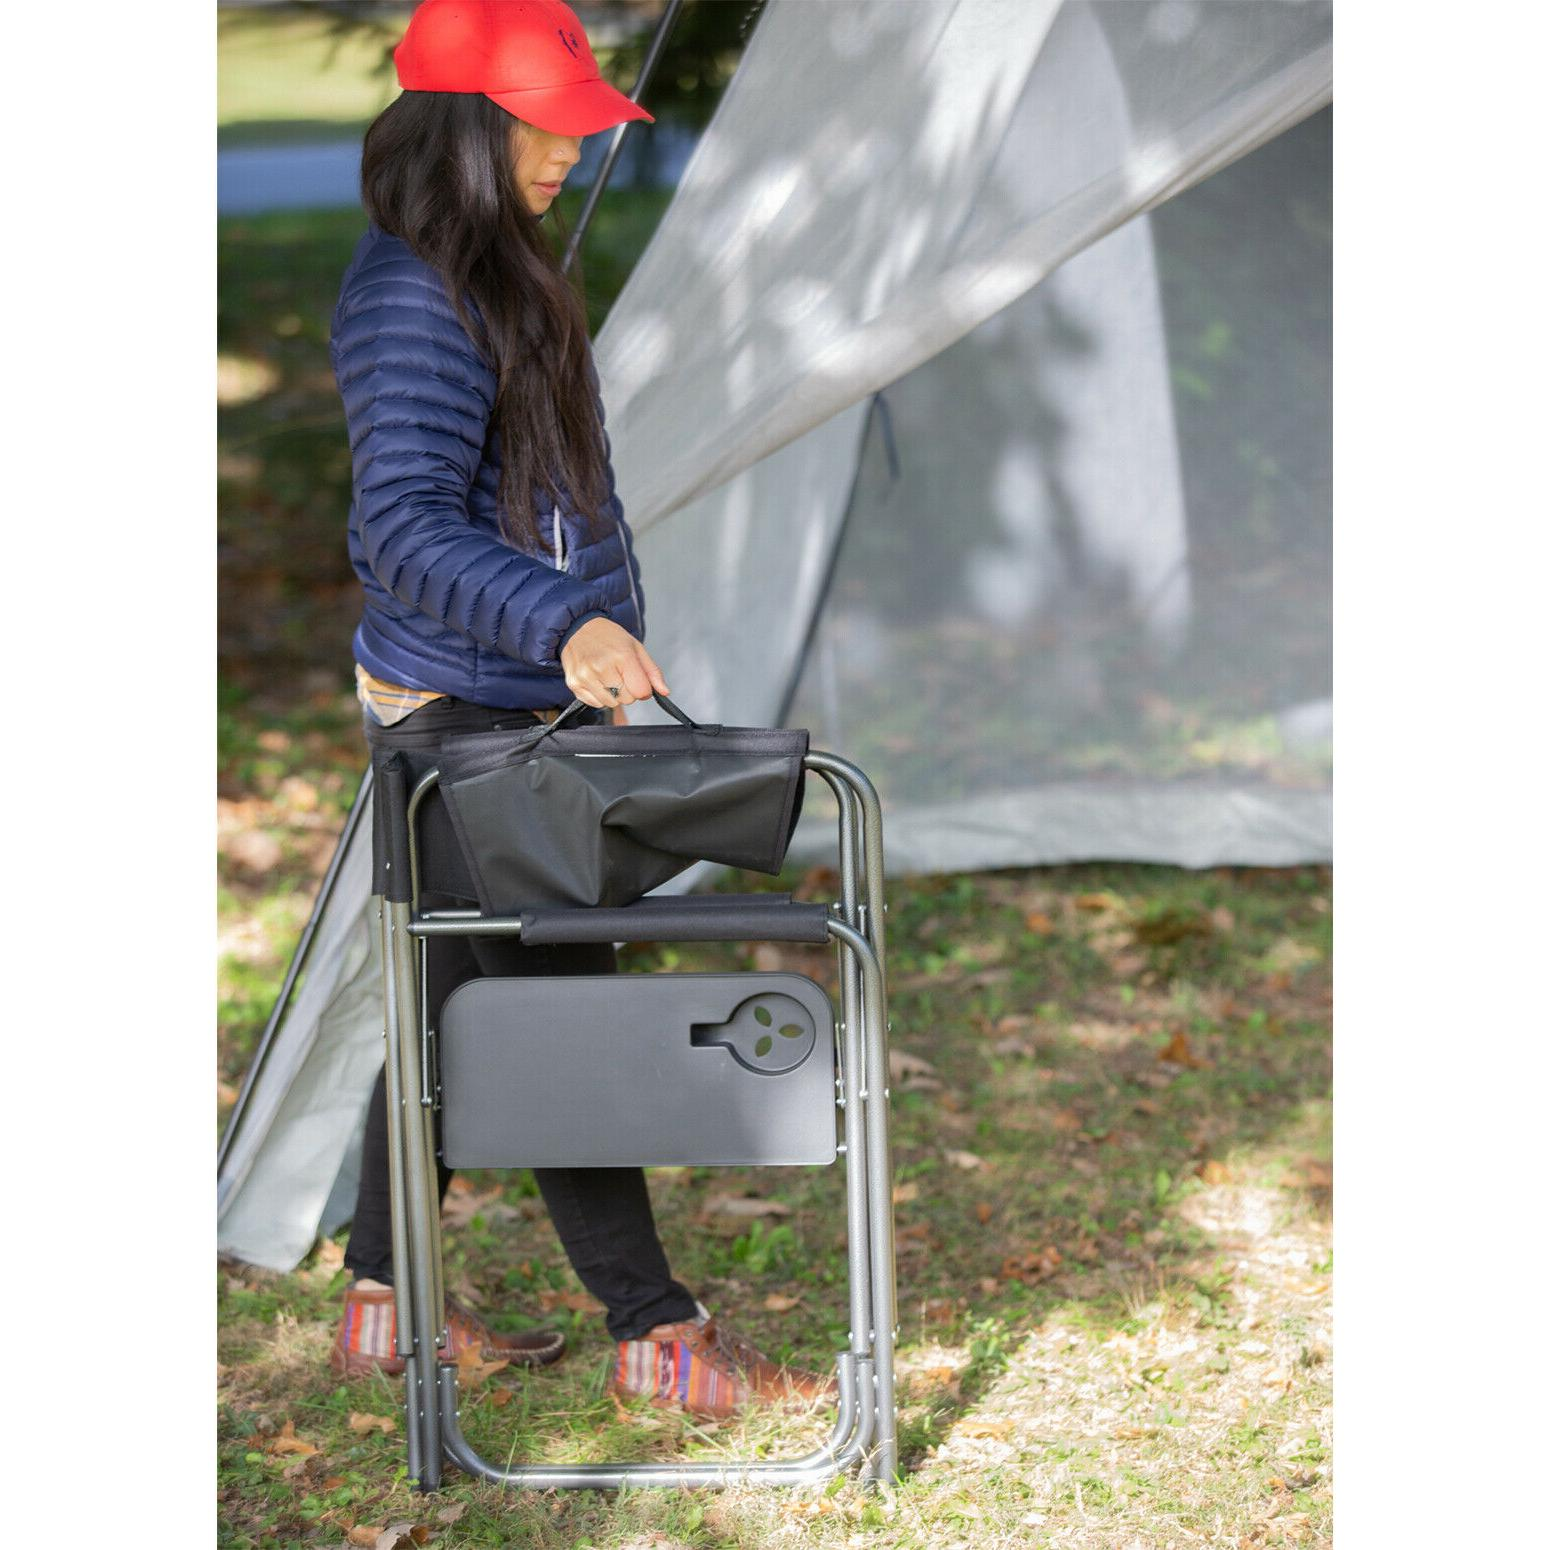 Foldable Director's Camping Seat Lawn Side Table